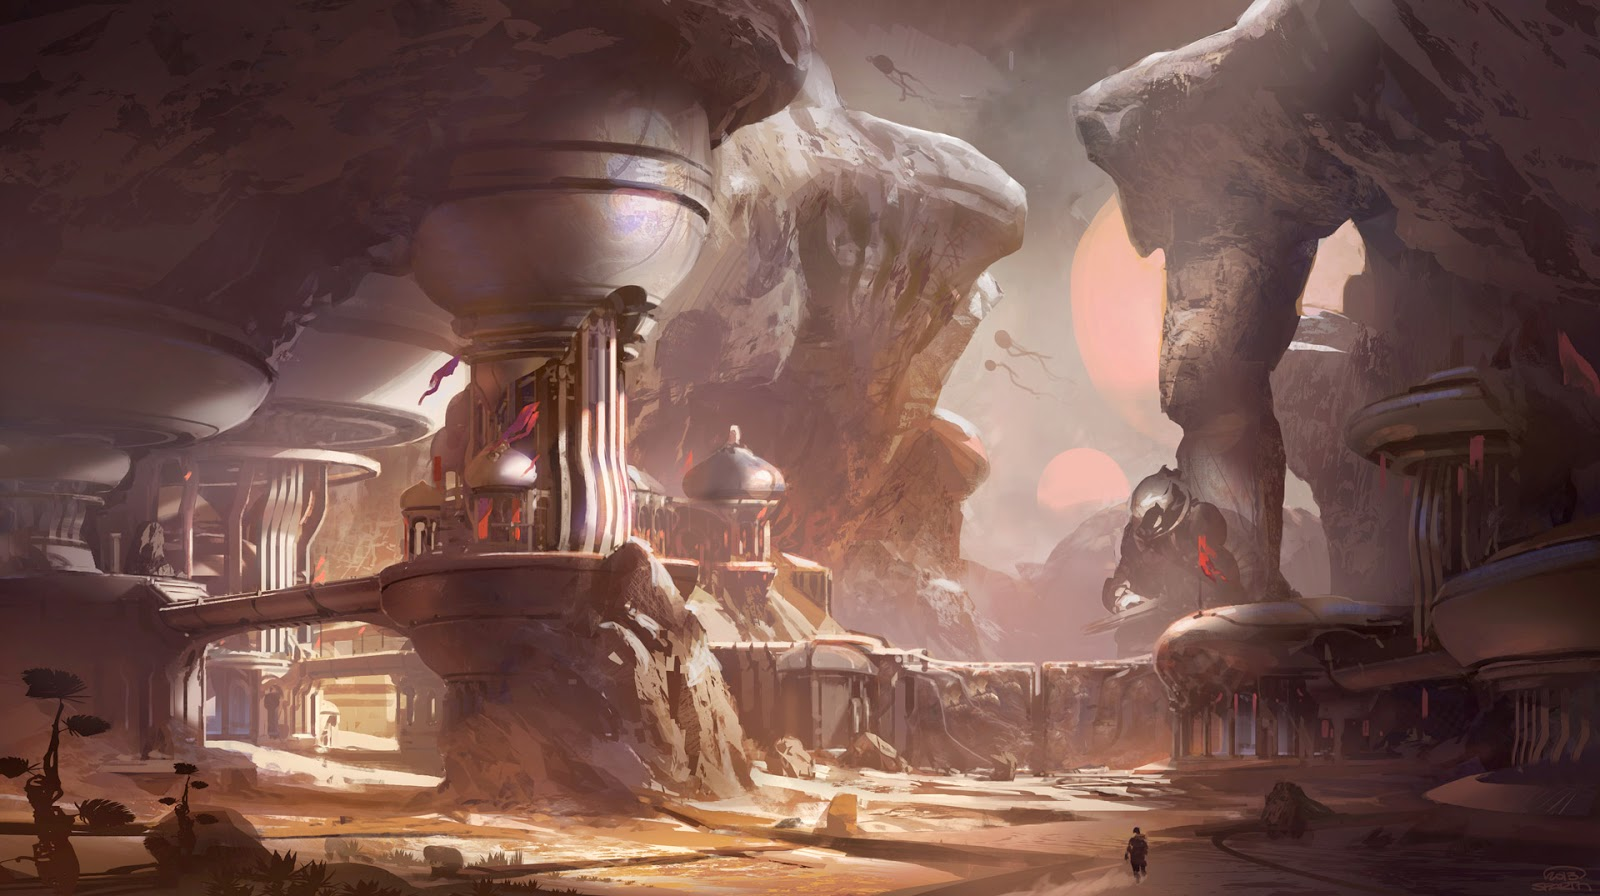 halo 5 concept art Guardians